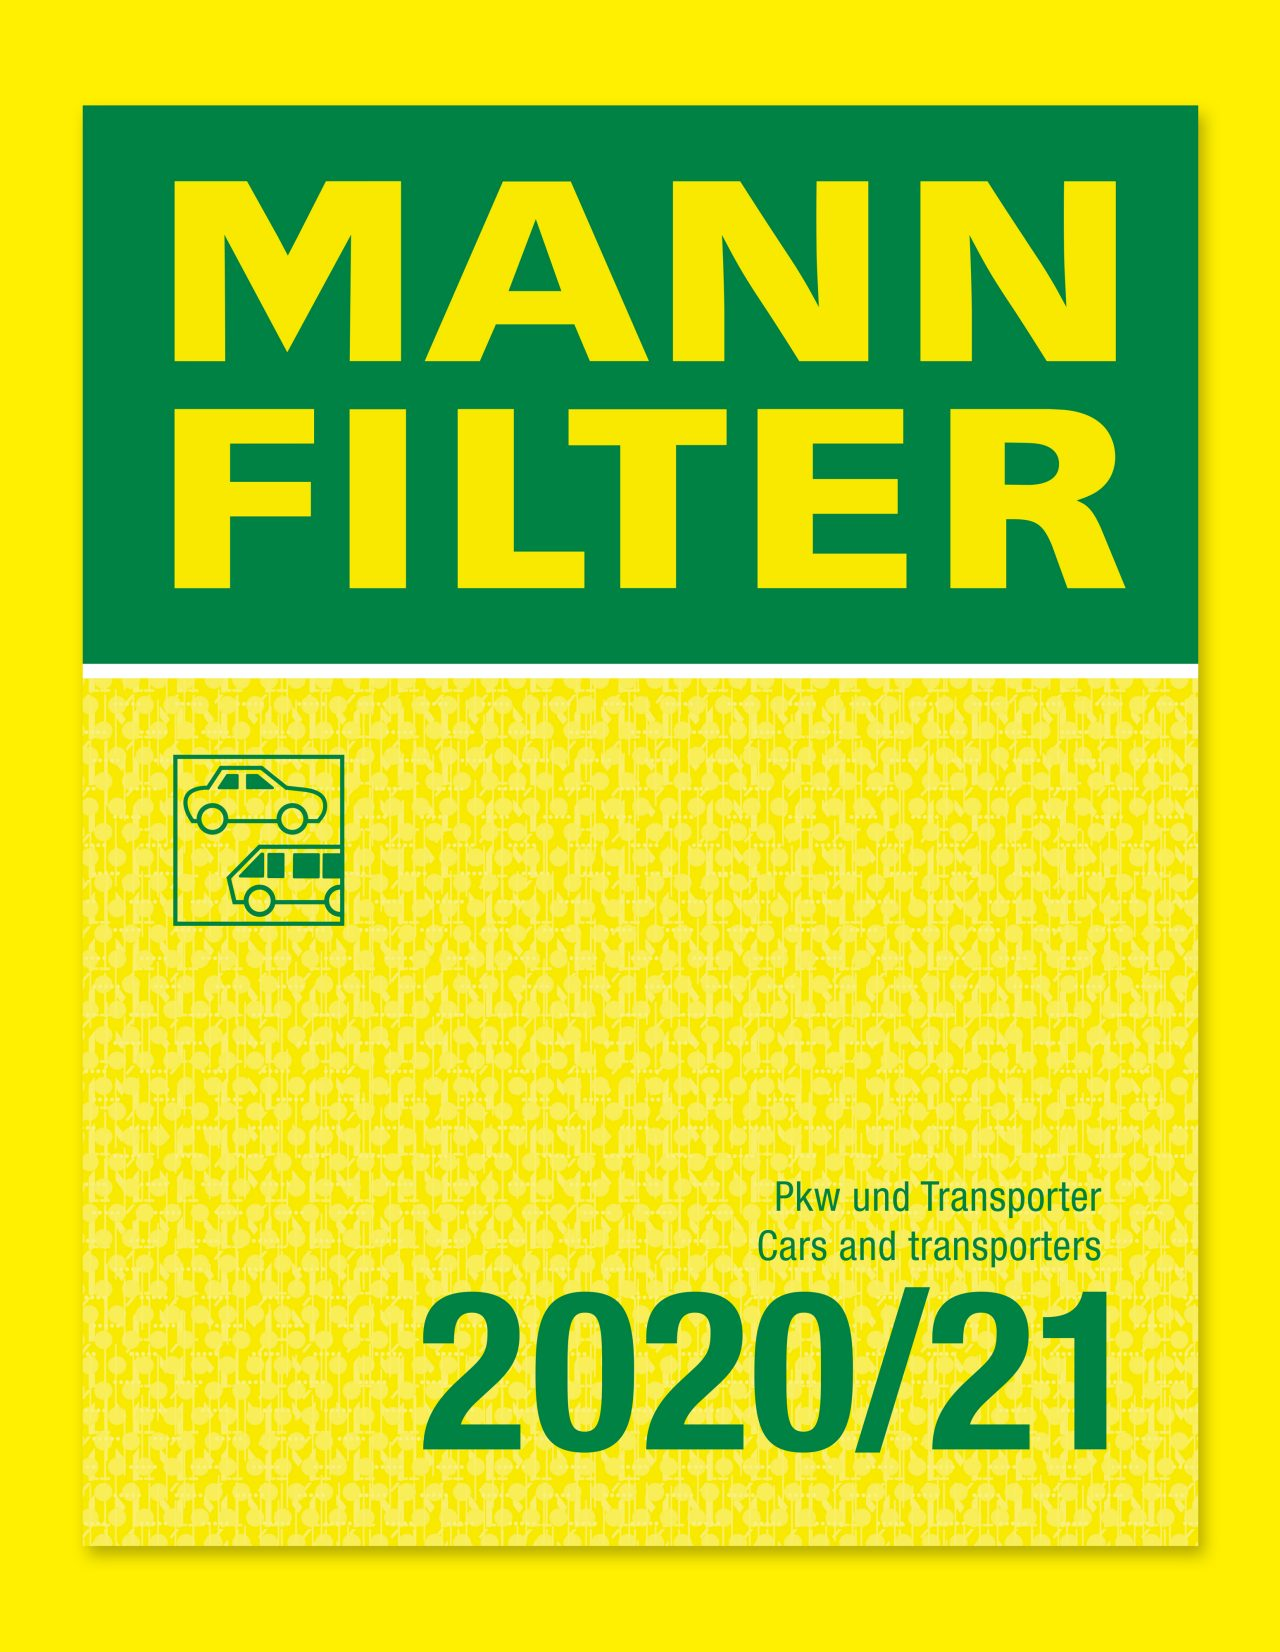 MANN-FILTER catalog for cars and transporters